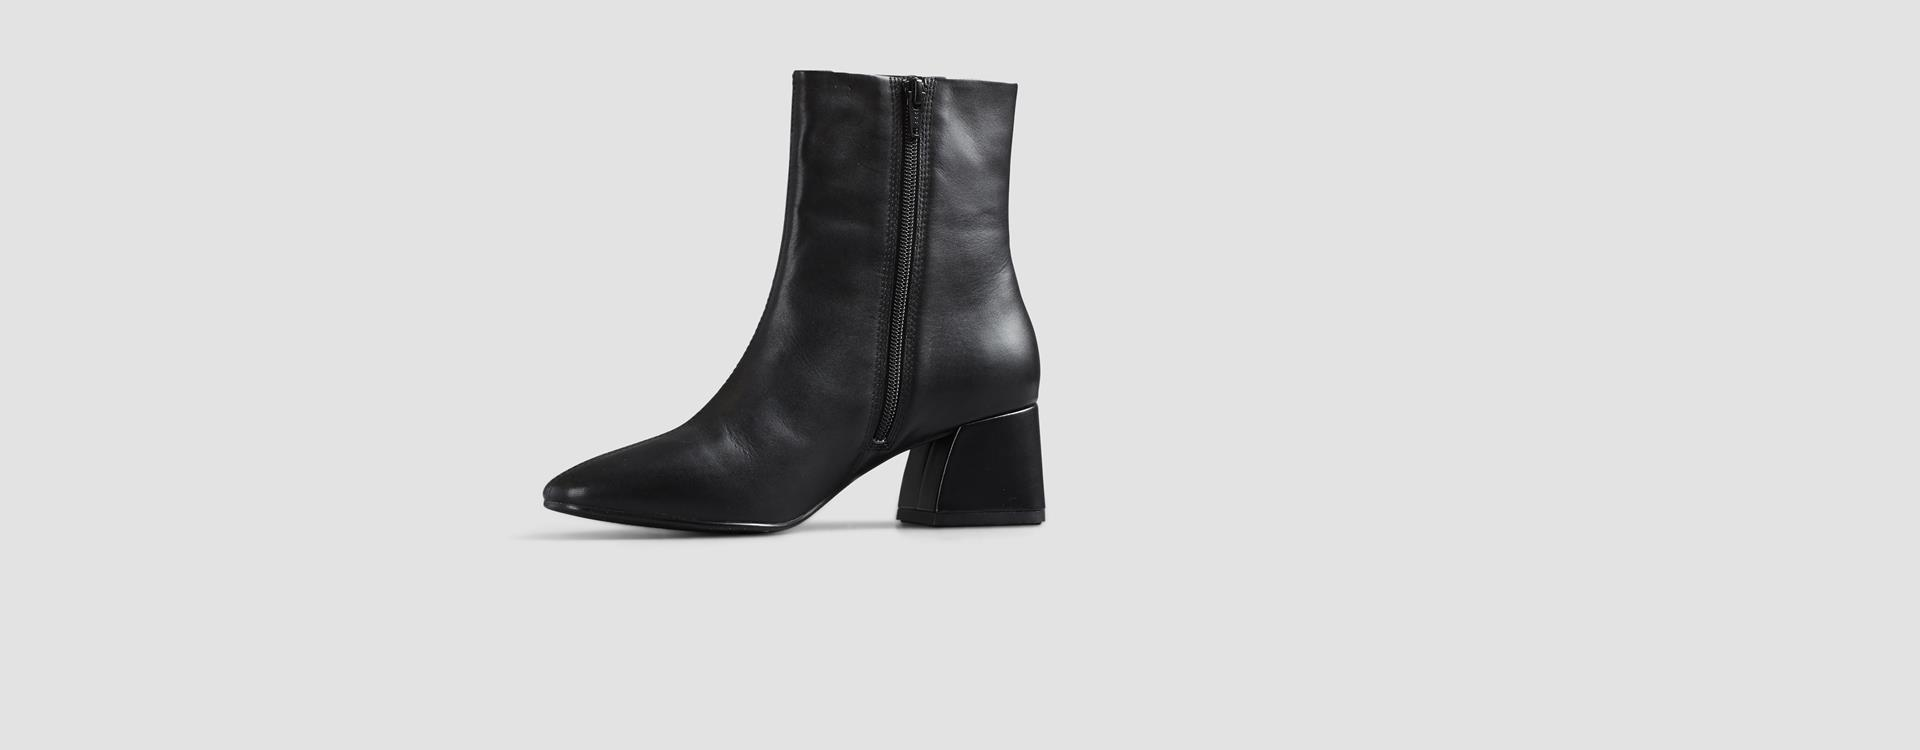 Vagabond Alice Leather Boots NWT